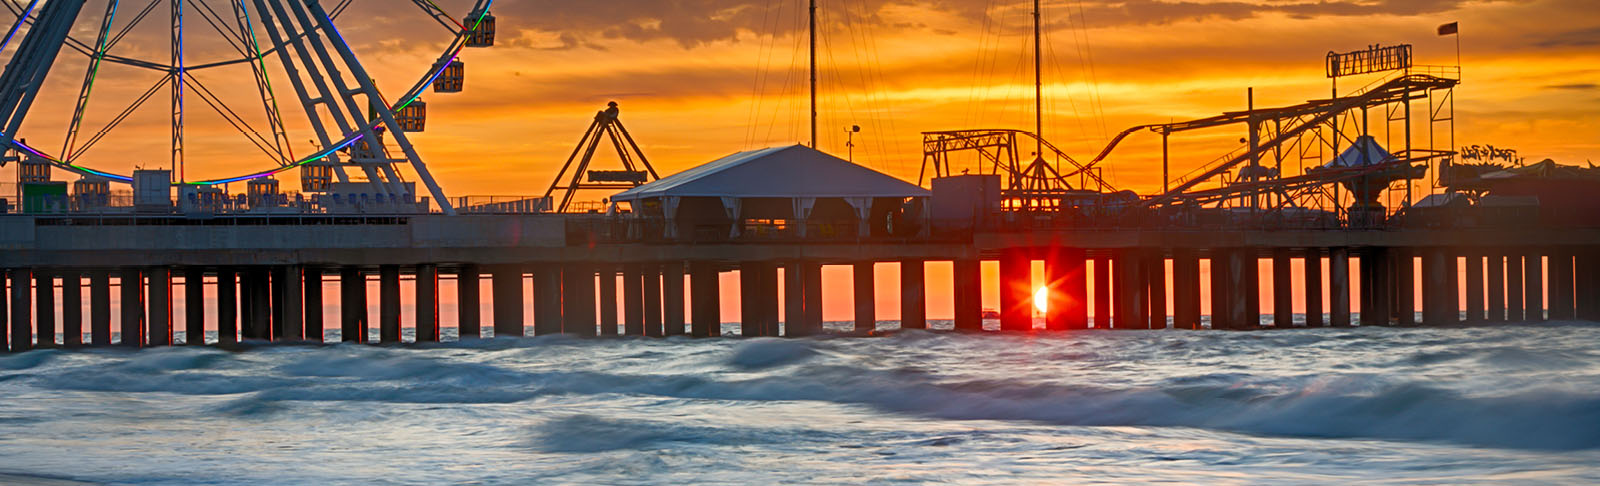 Steel Pier at sunrise with sun peaking through pier with ocean waves crashing.